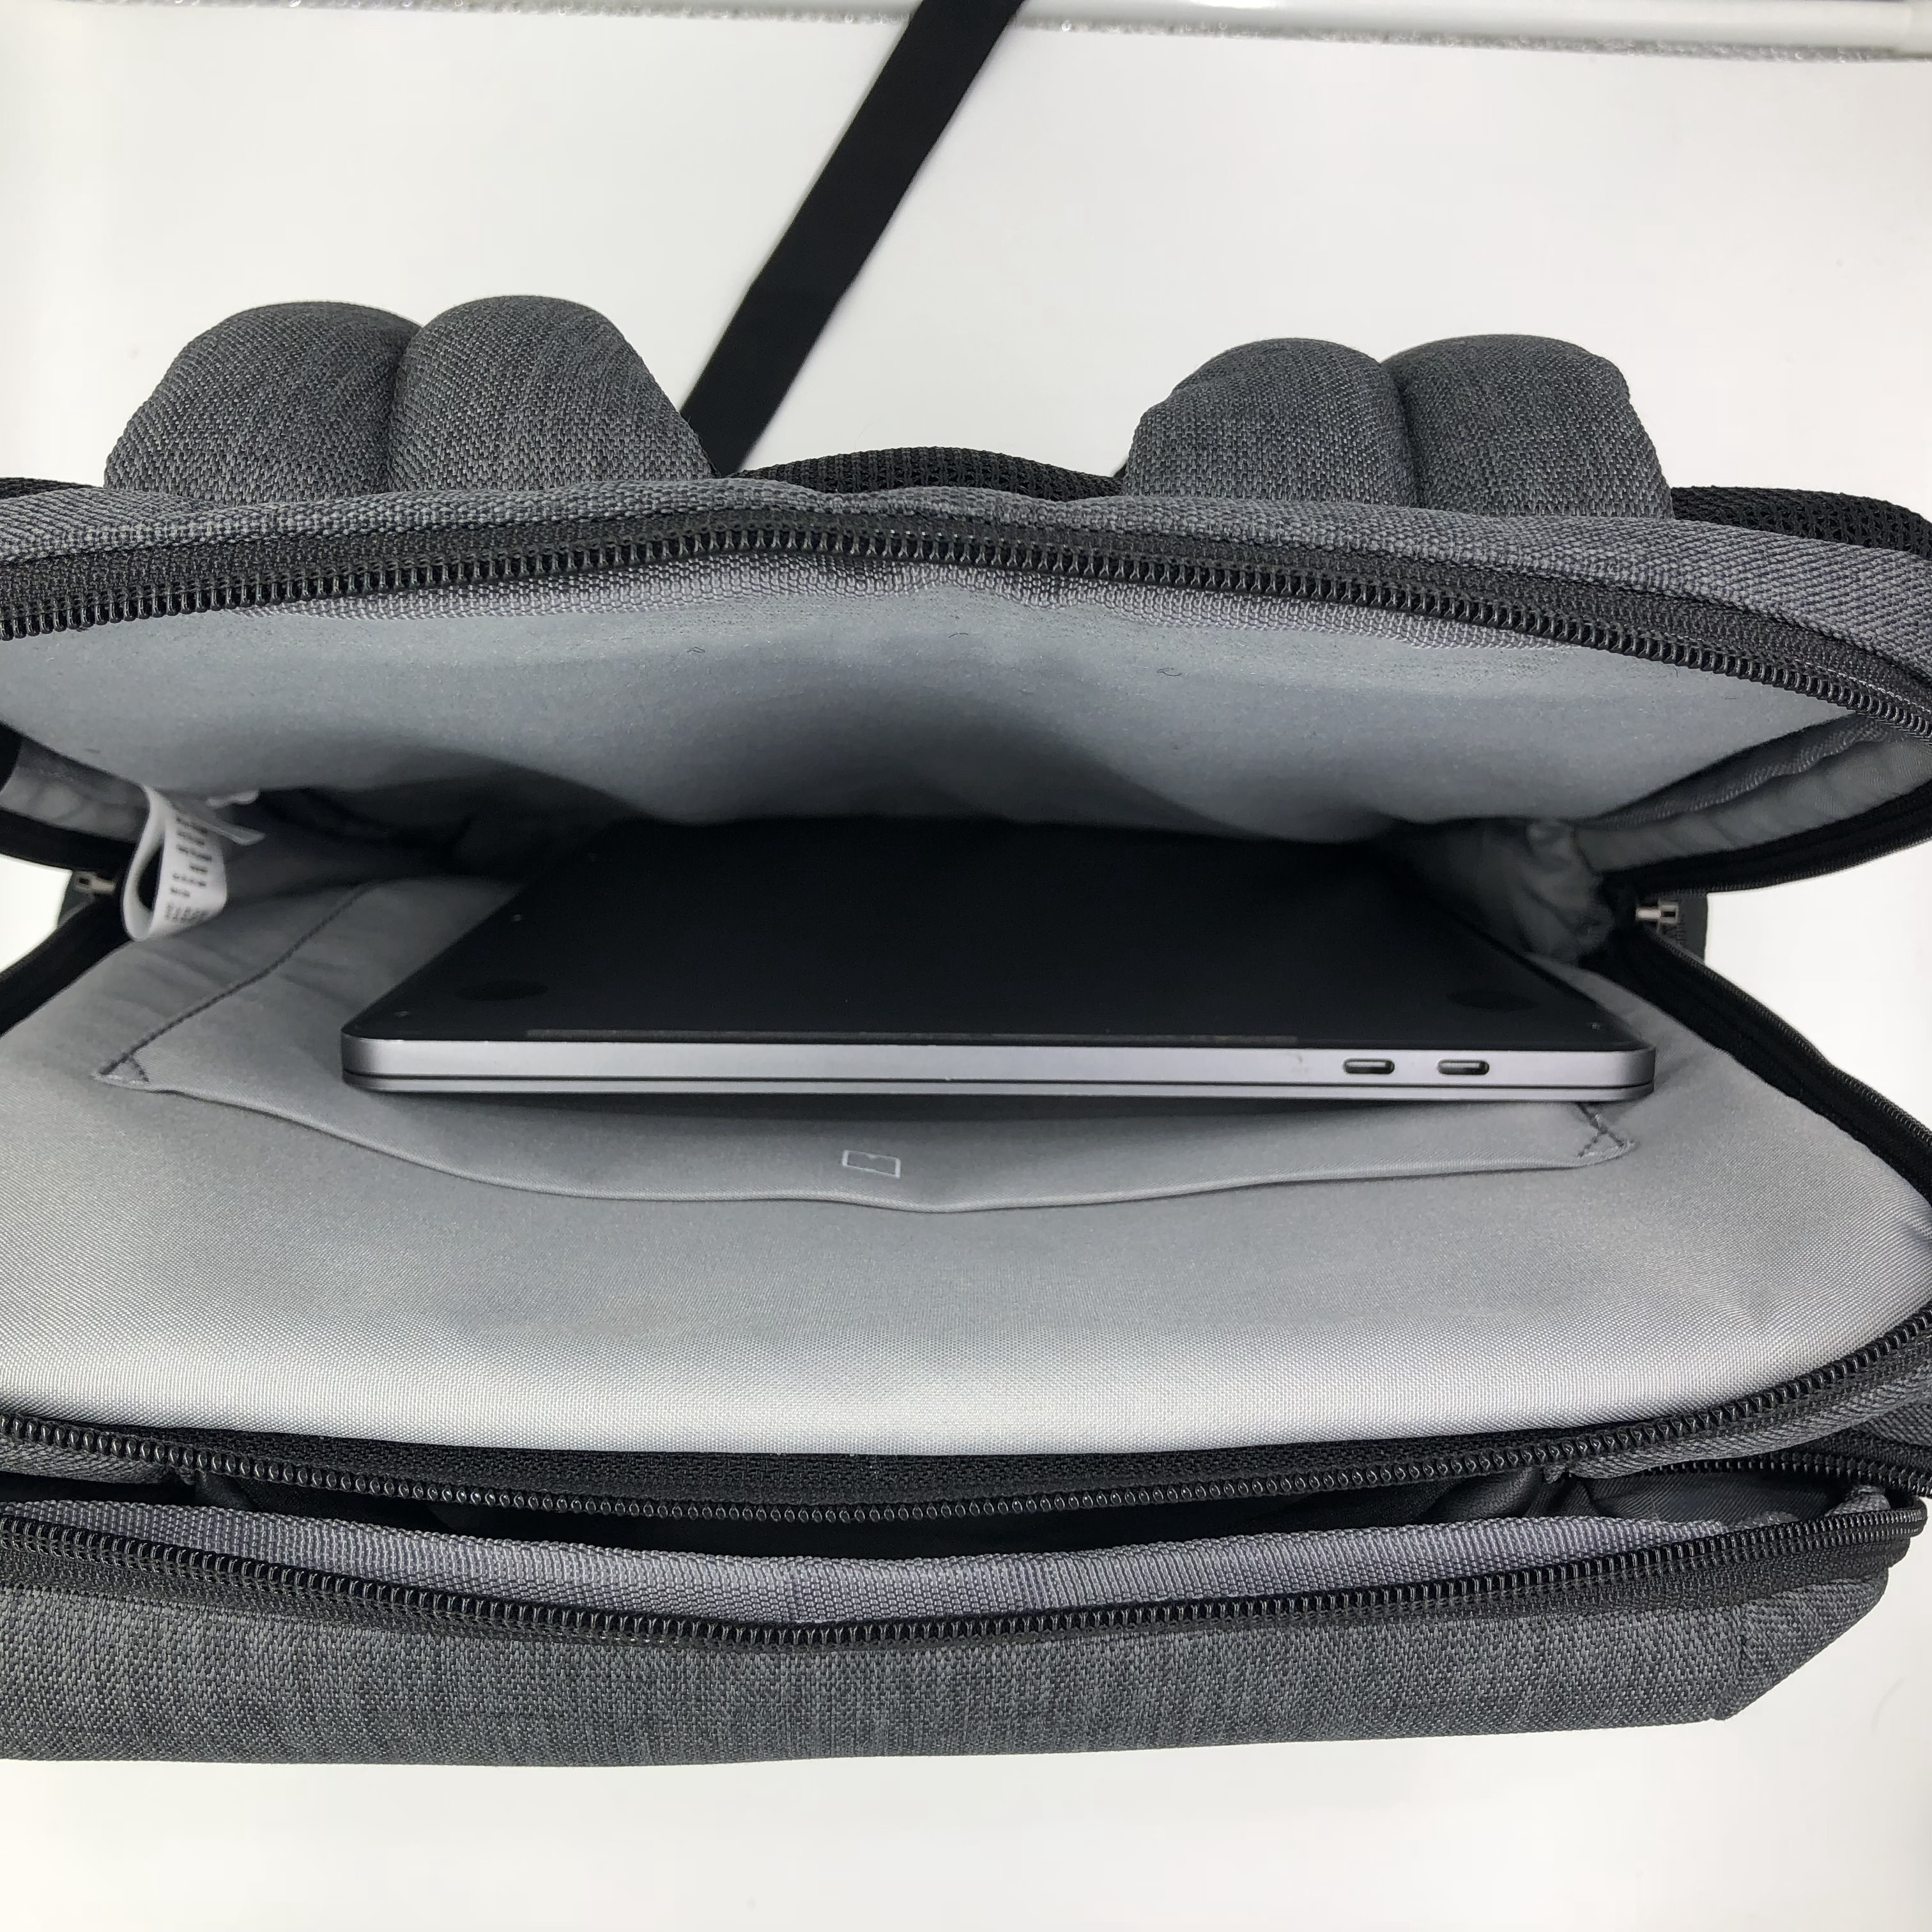 Xiaomi Commuter - Xiaomi backpack with a detachable shoulder bag